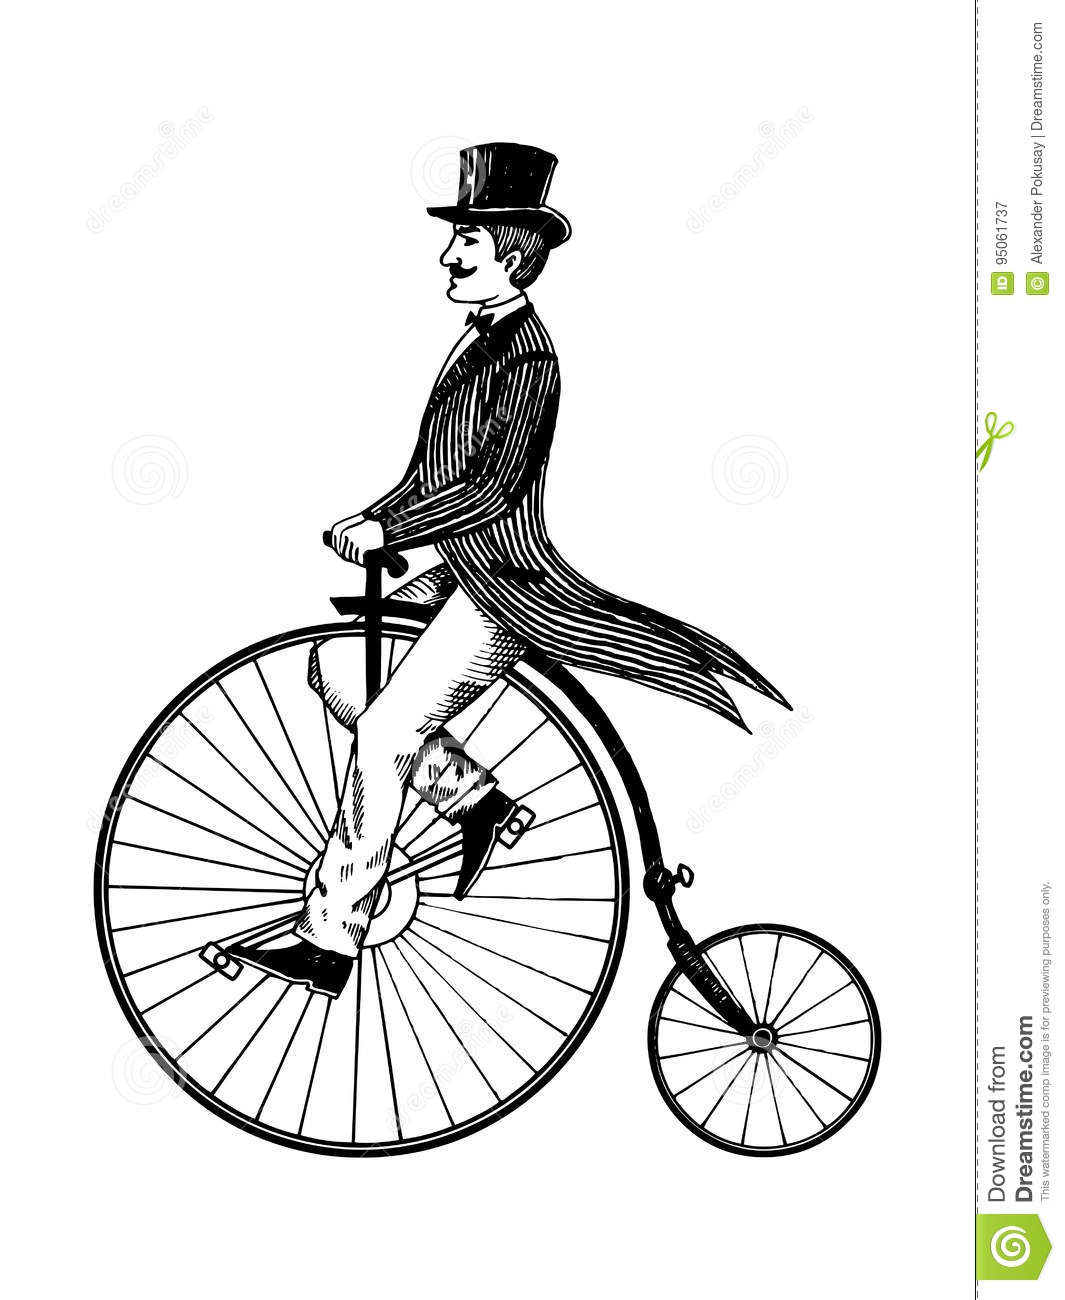 Man On Retro Vintage Old Bicycle Engraving Vector Stock